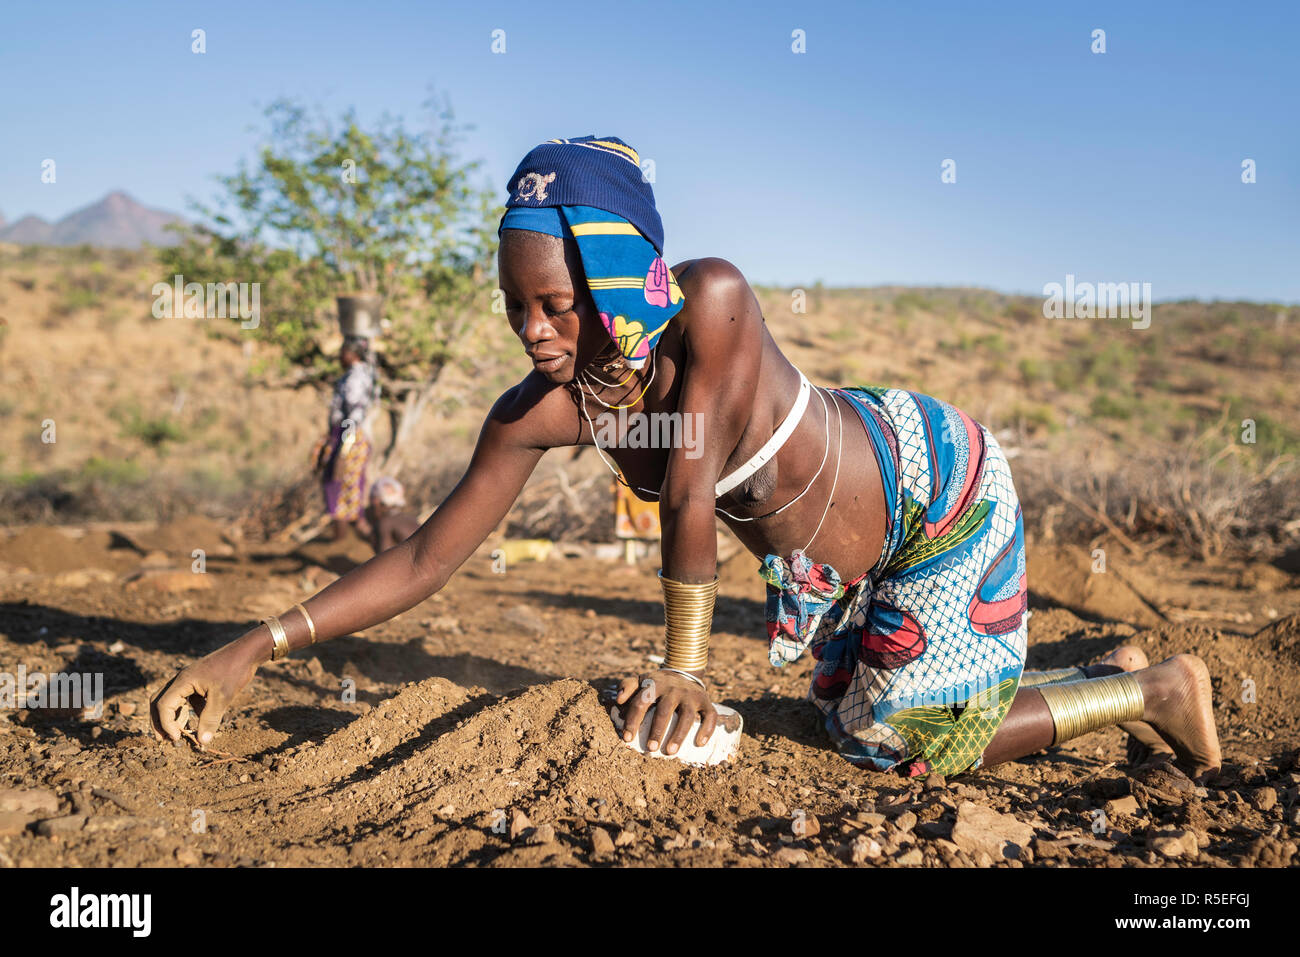 Mucubale women working in the field collecting sheep dung to use it as fertiliser. Stock Photo